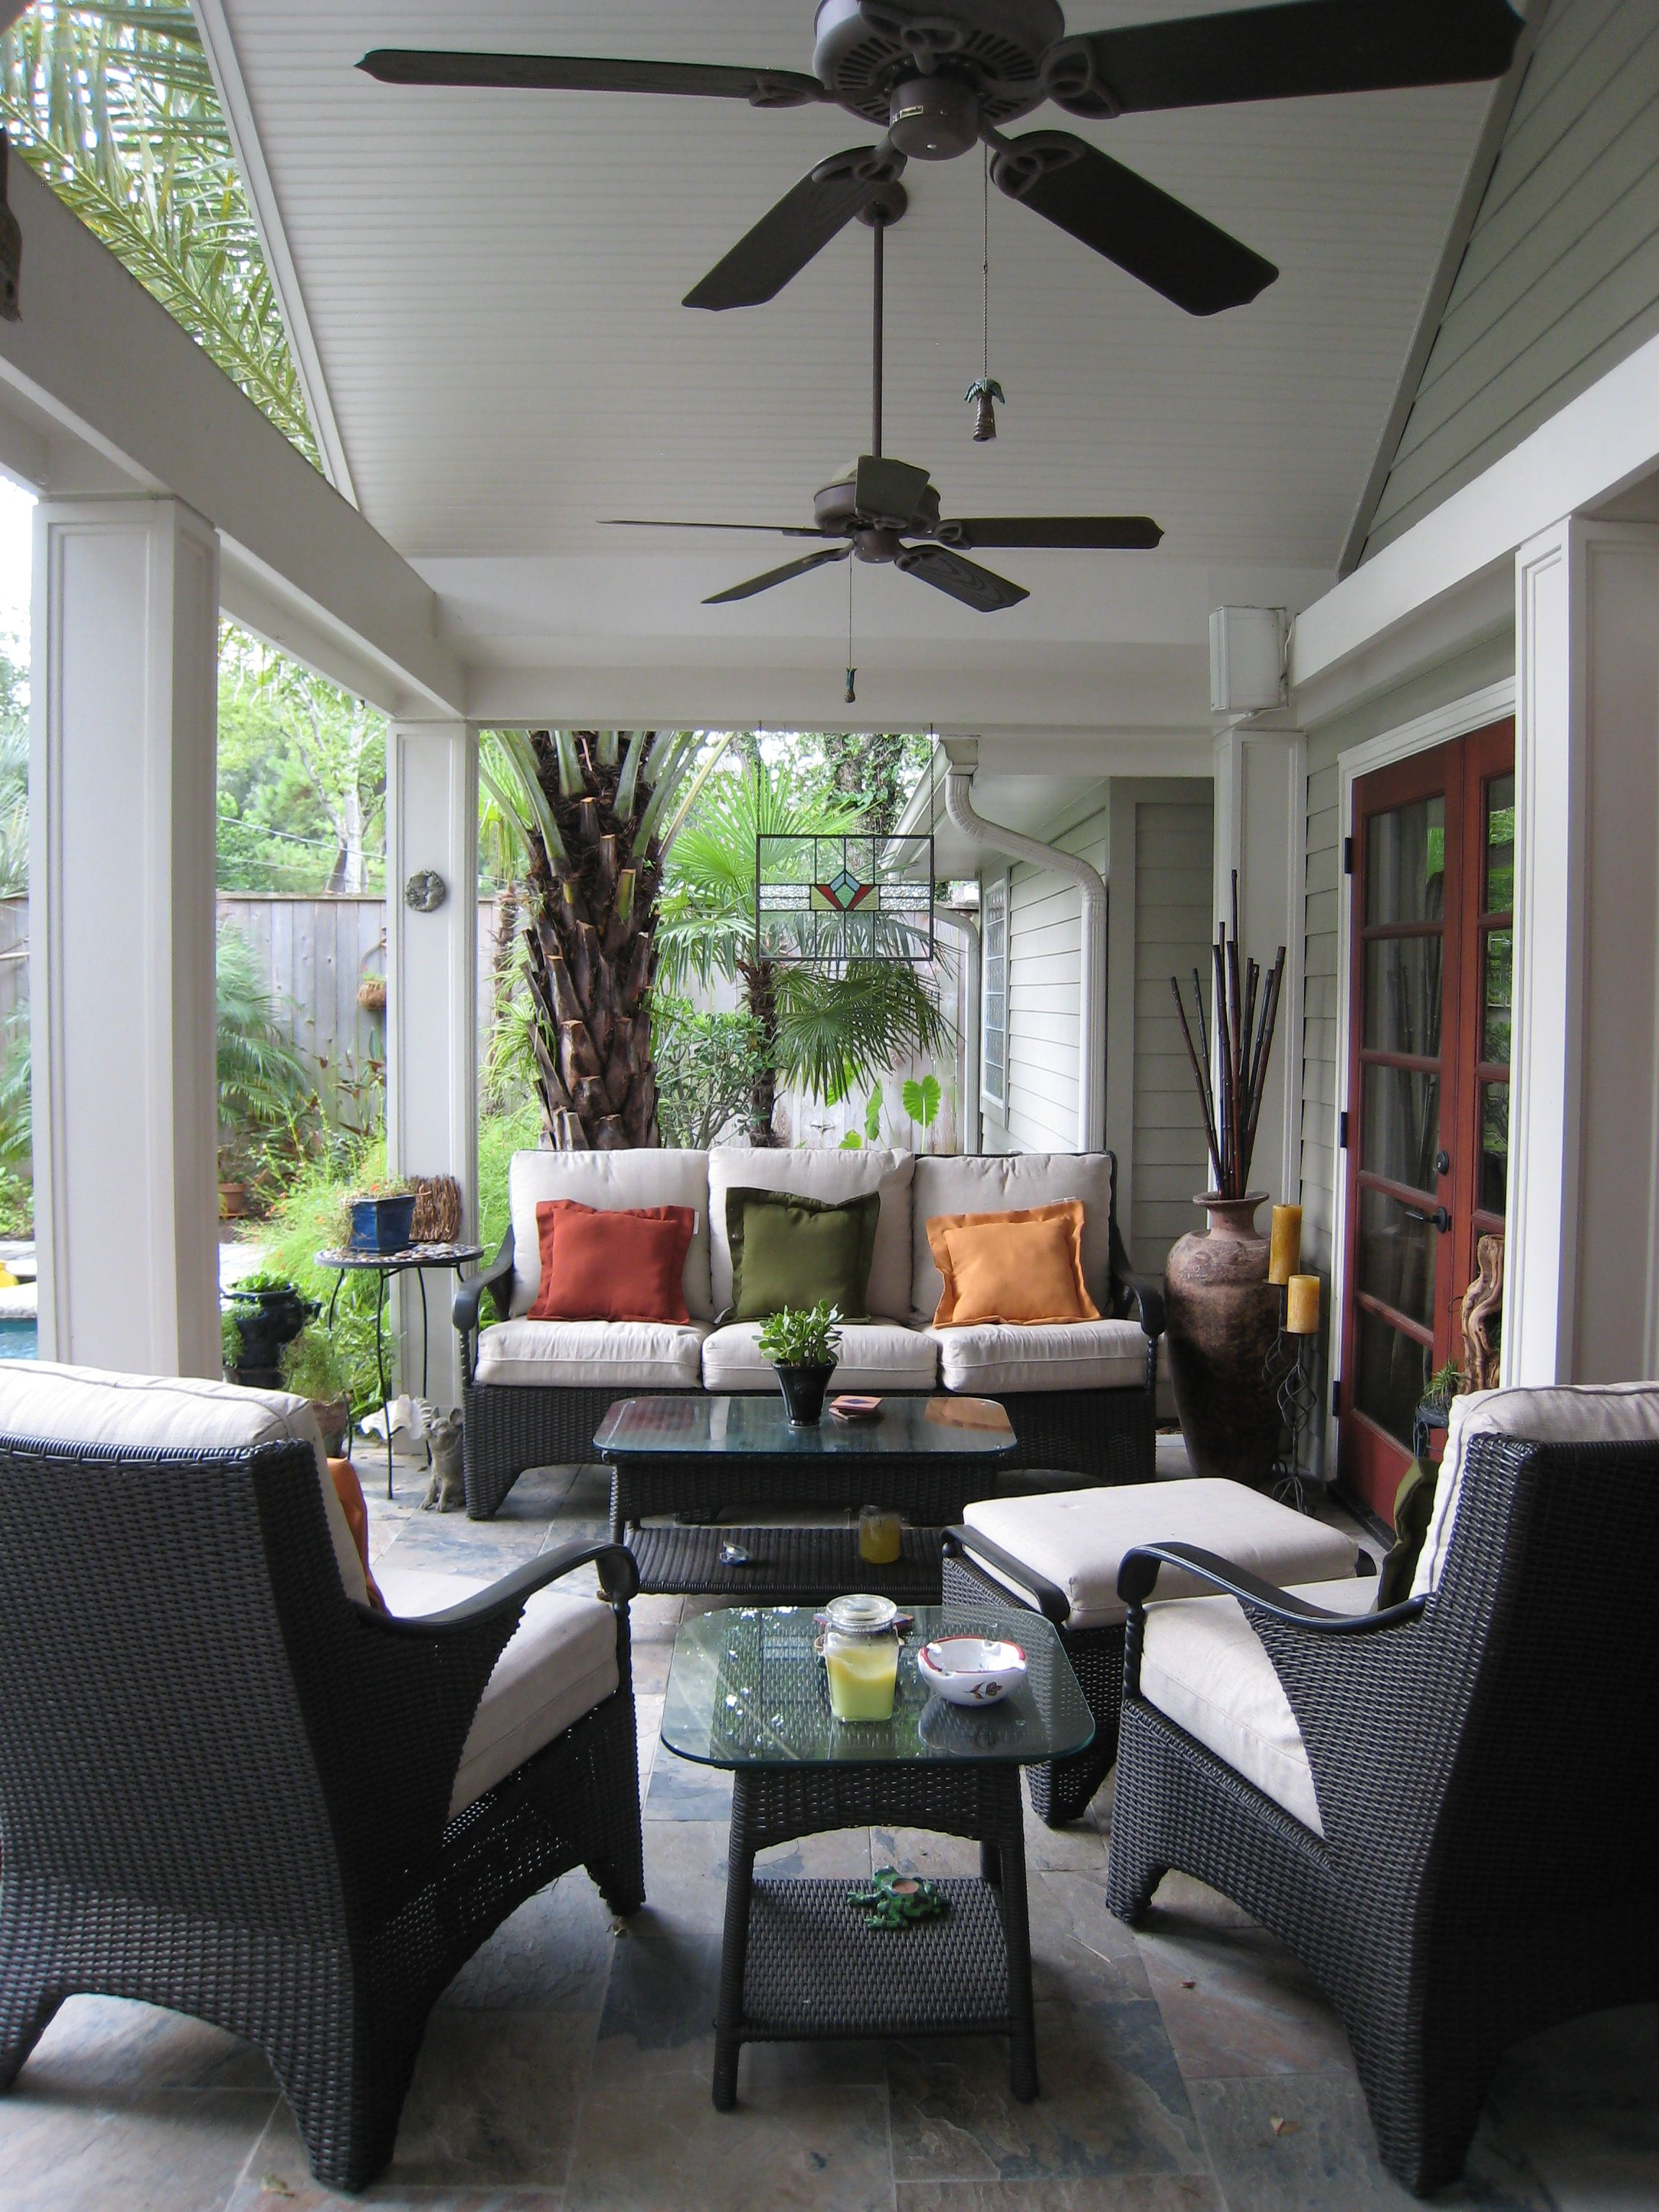 Covered Patio Seating Patio Seating Arrangement Patio Seating